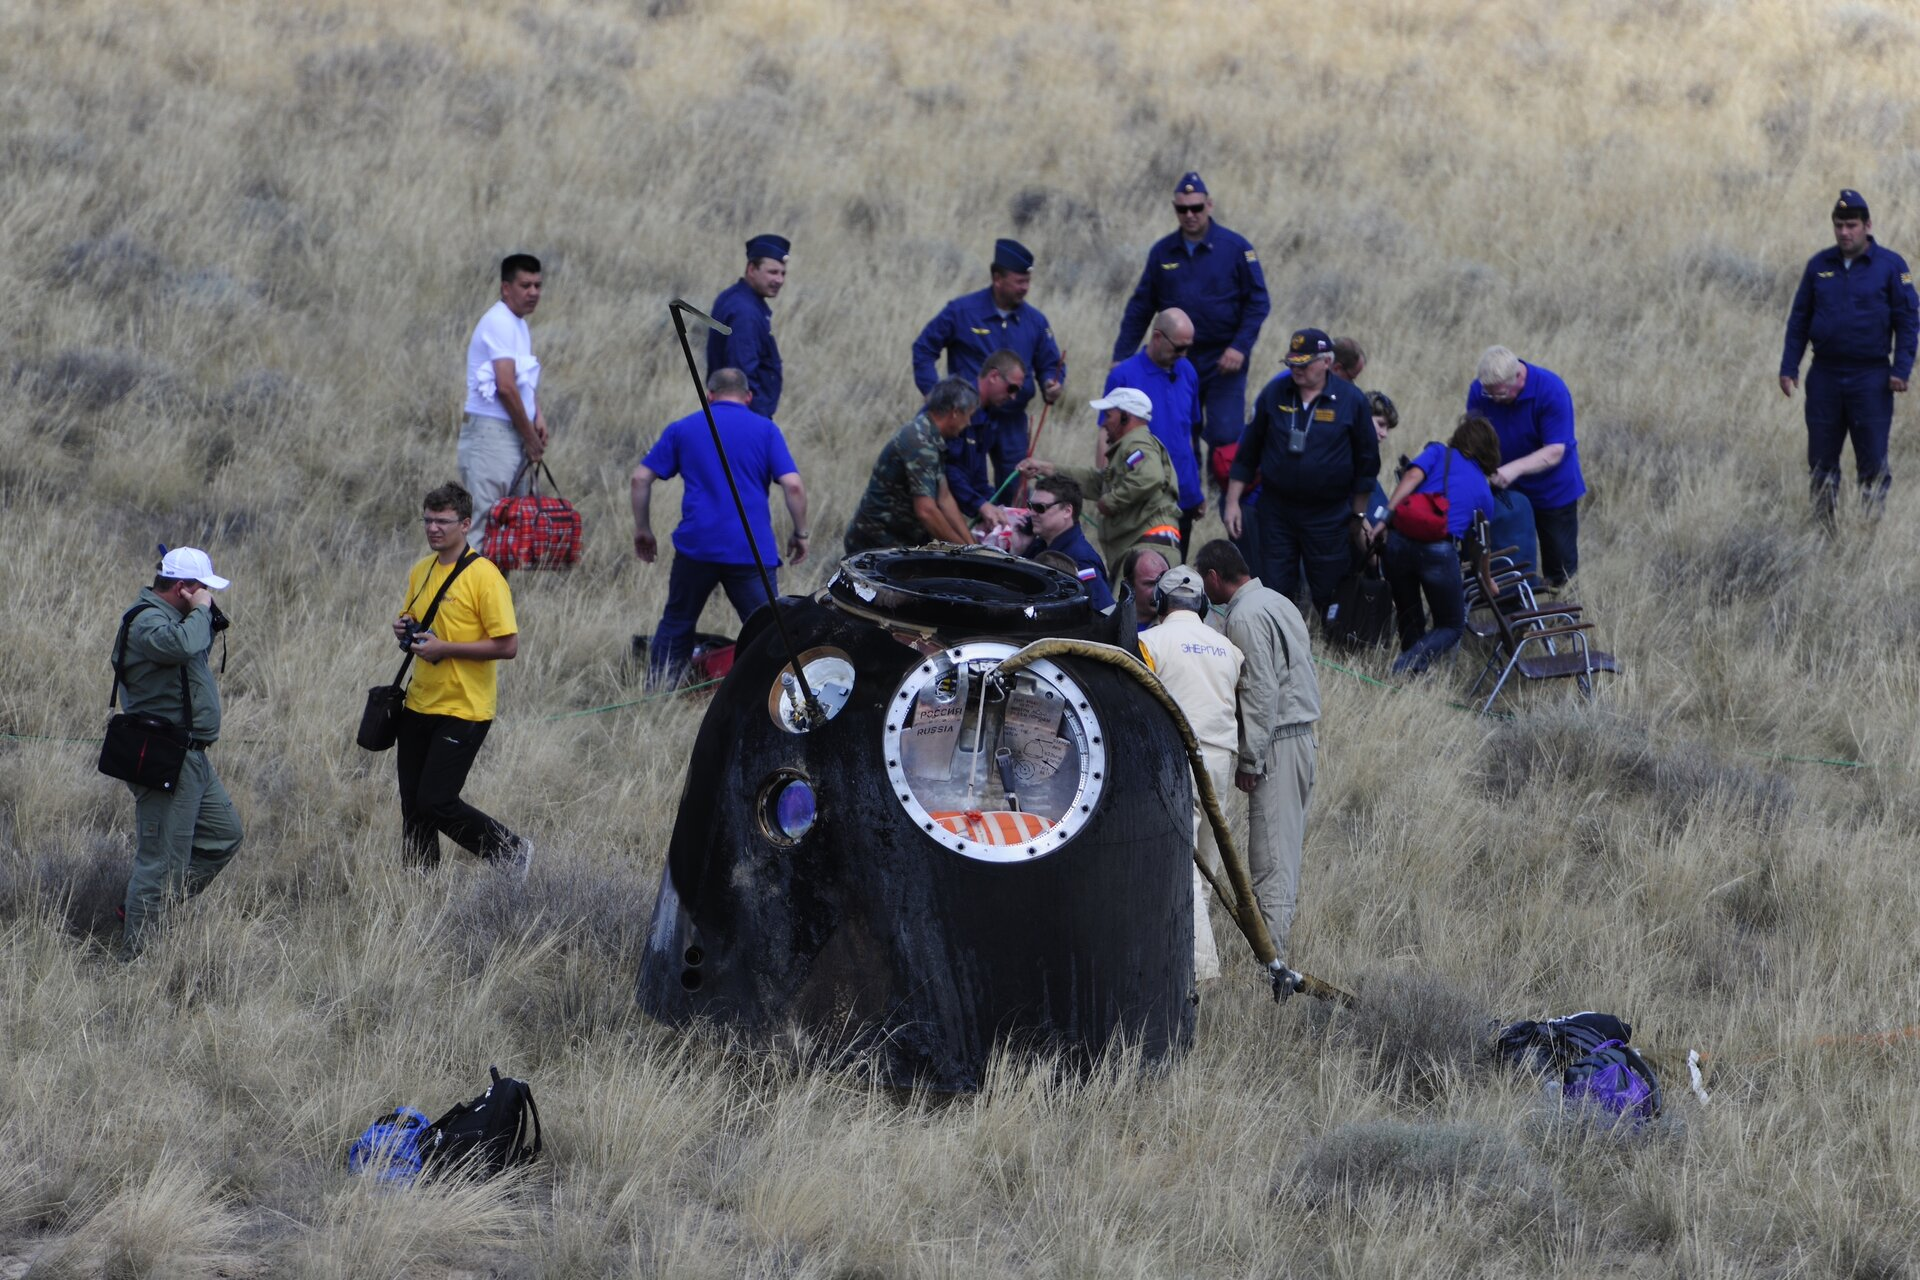 André's capsule's 2012 return to Earth